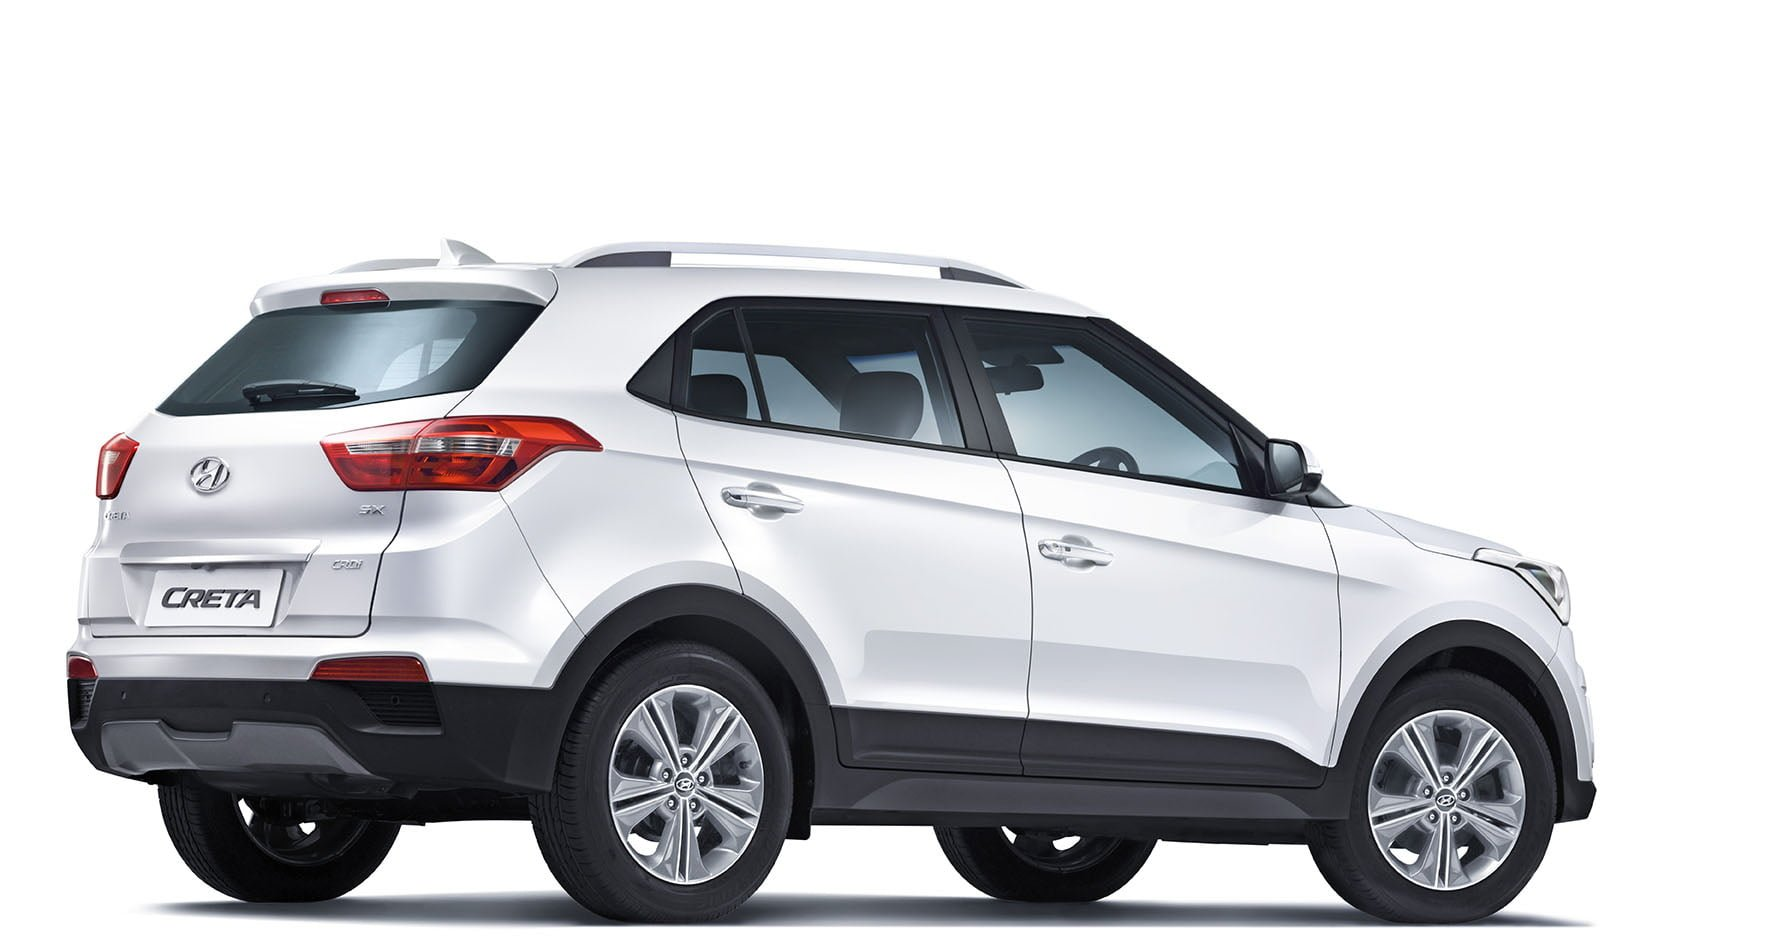 Hyundai Creta Mileage Comparison With Duster